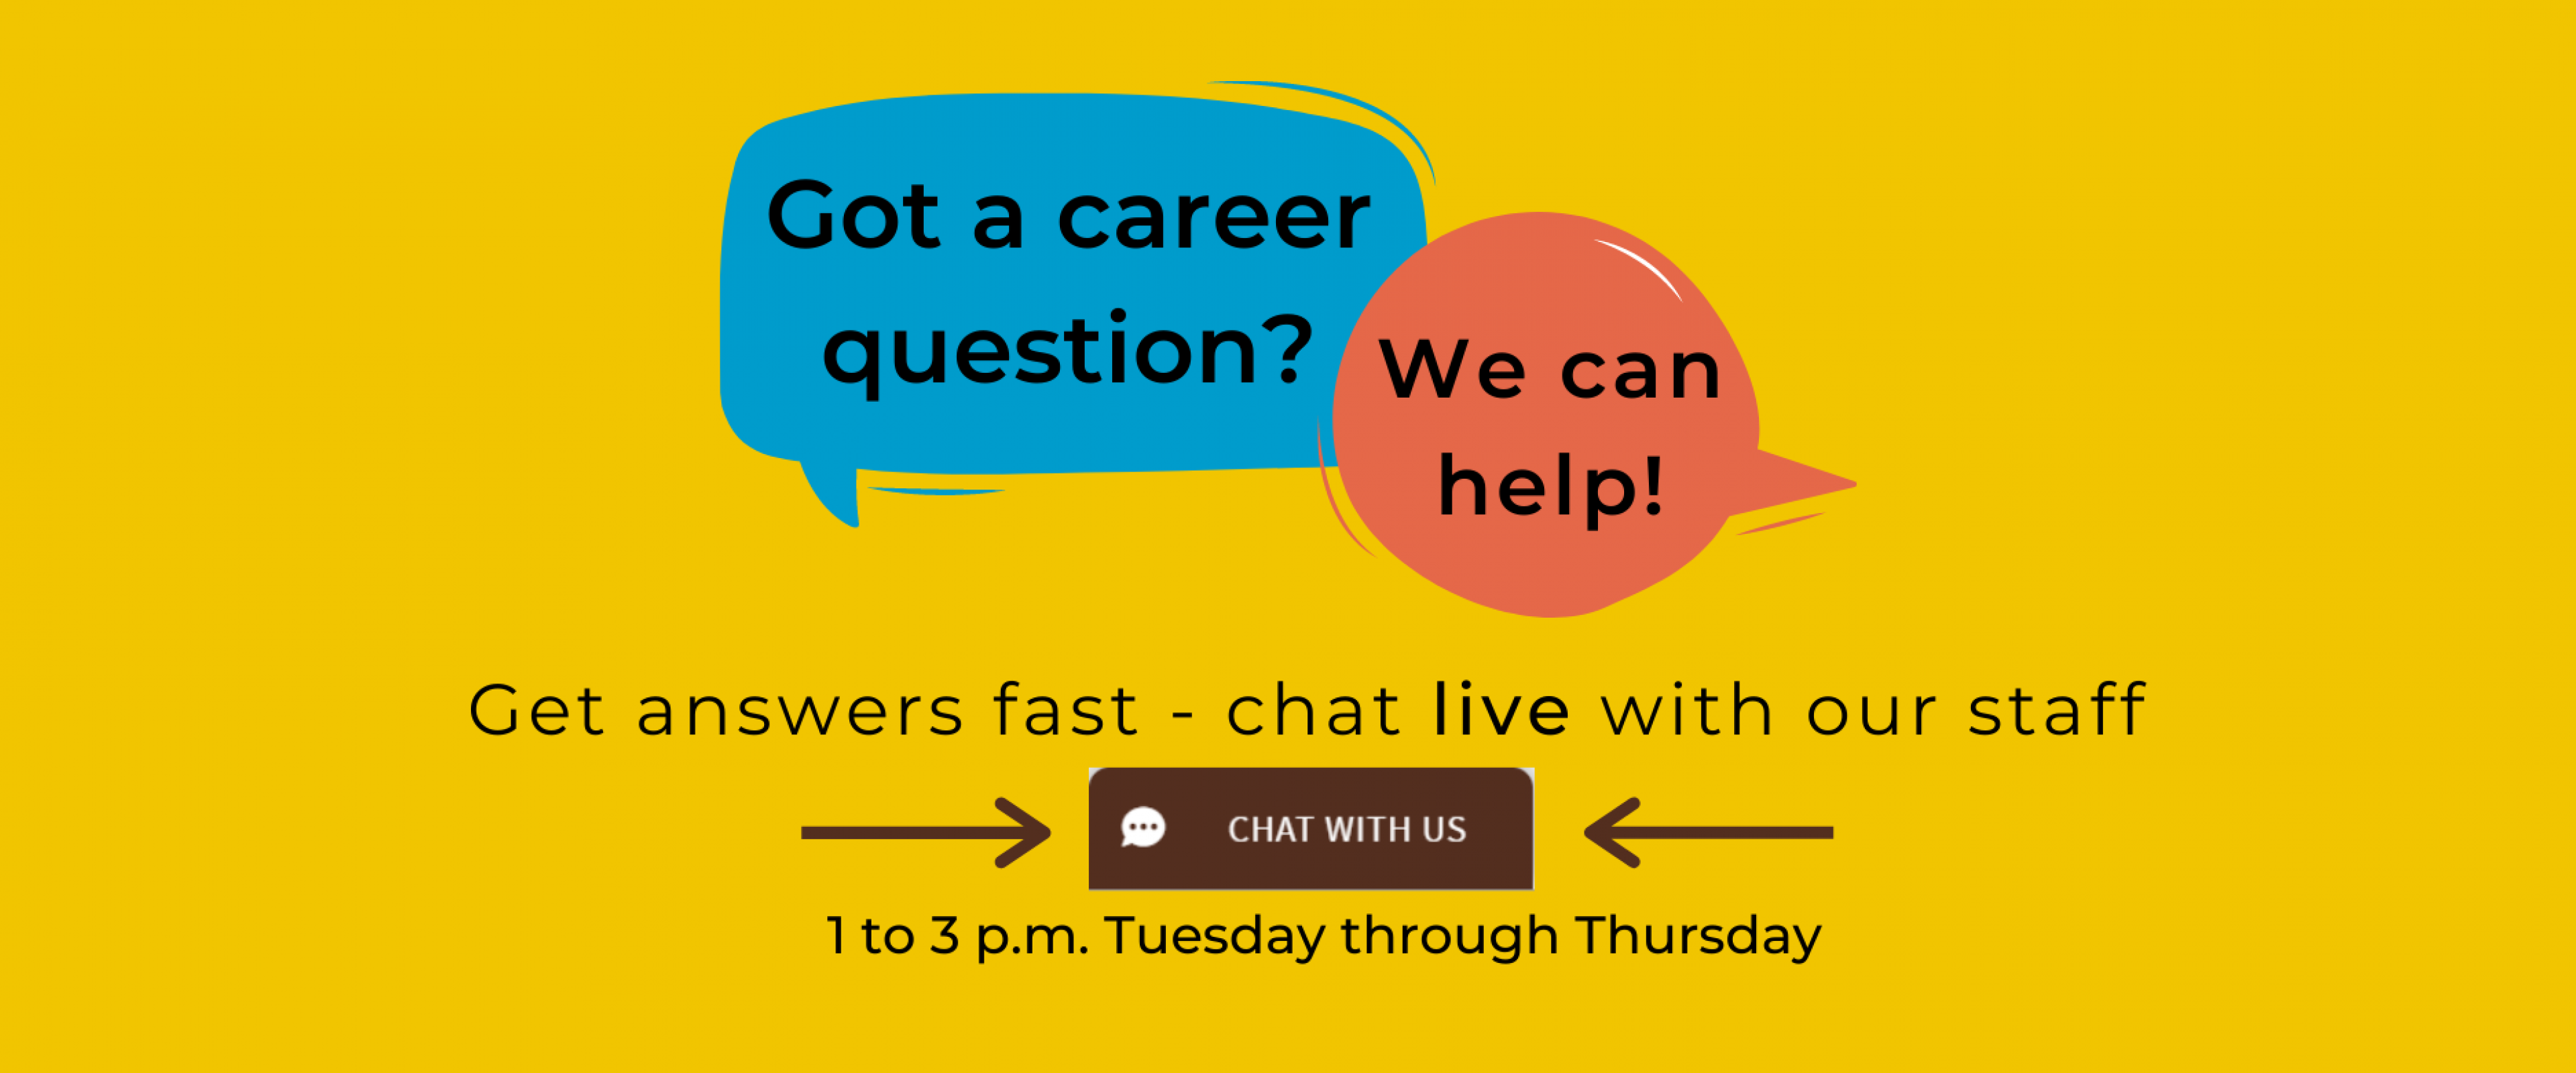 """Got a career question? We can help! Get answers fast - chat live with our staff 1 to 3 p.m. Tuesday through Thursday. Look for the brown """"Chat with us"""" tab at the bottom right corner of the page."""